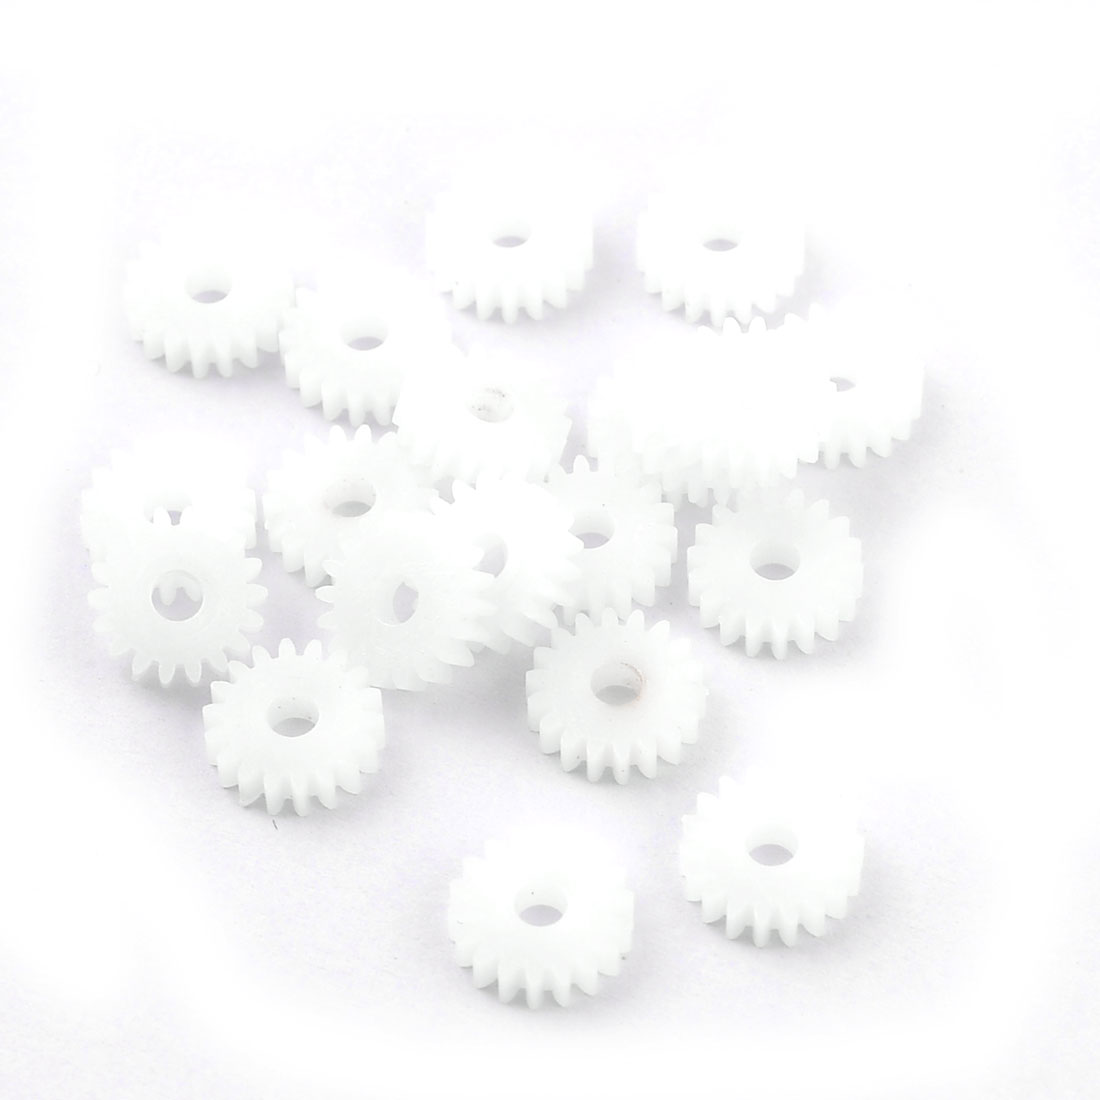 20 Pcs White Plastic 10 x 3mm 10mm Diameter Wheel Toothed Gears